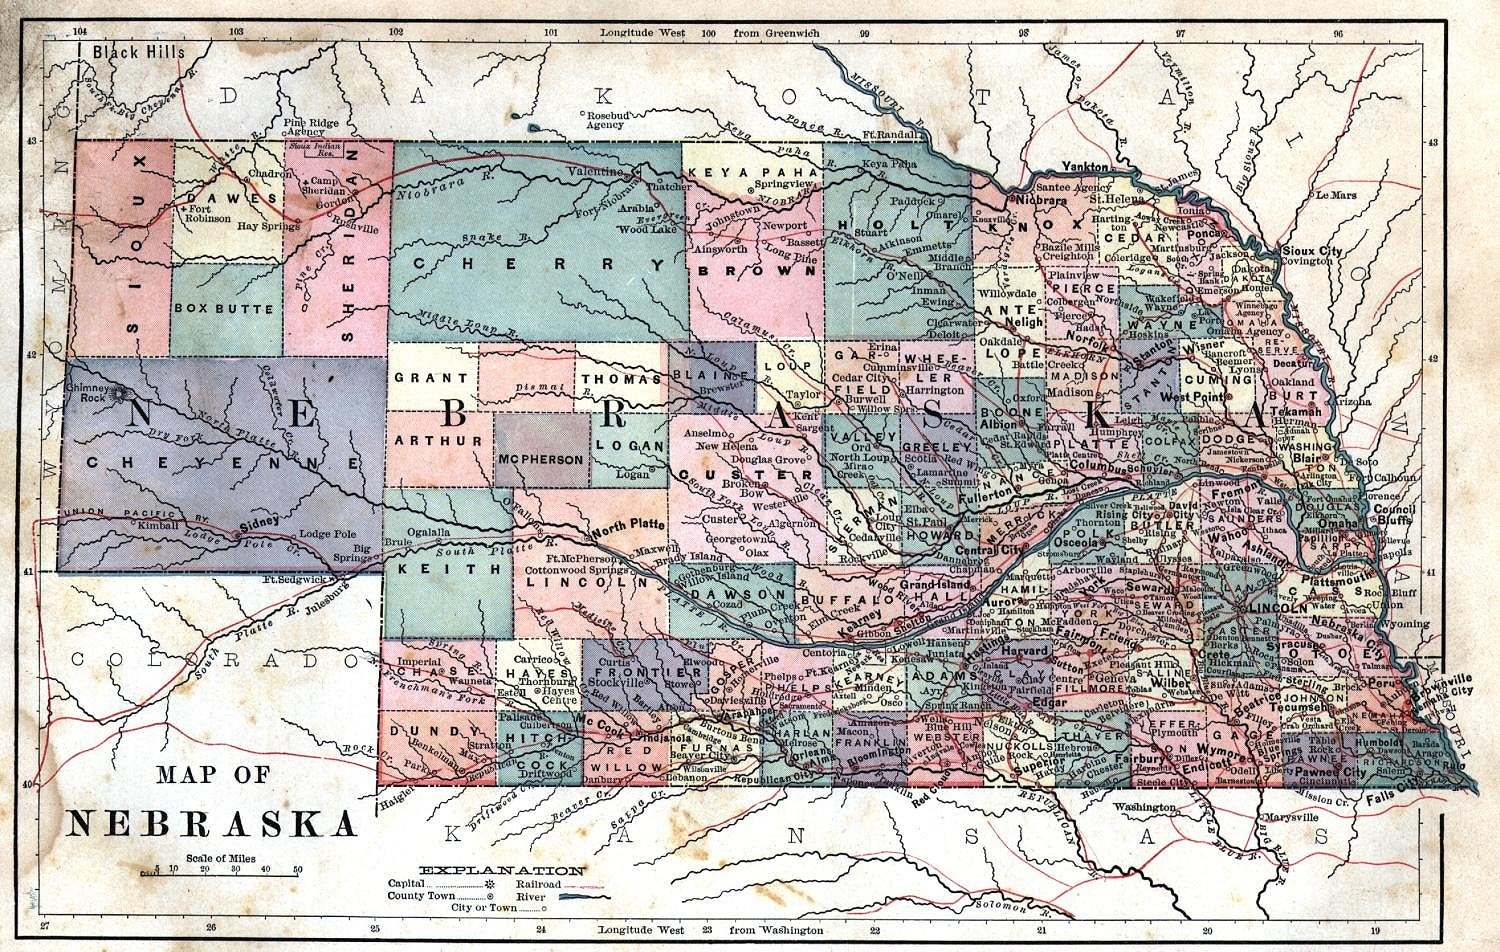 Nebraska Maps Nebraska Digital Map Library Table Of Contents - State map of nebraska